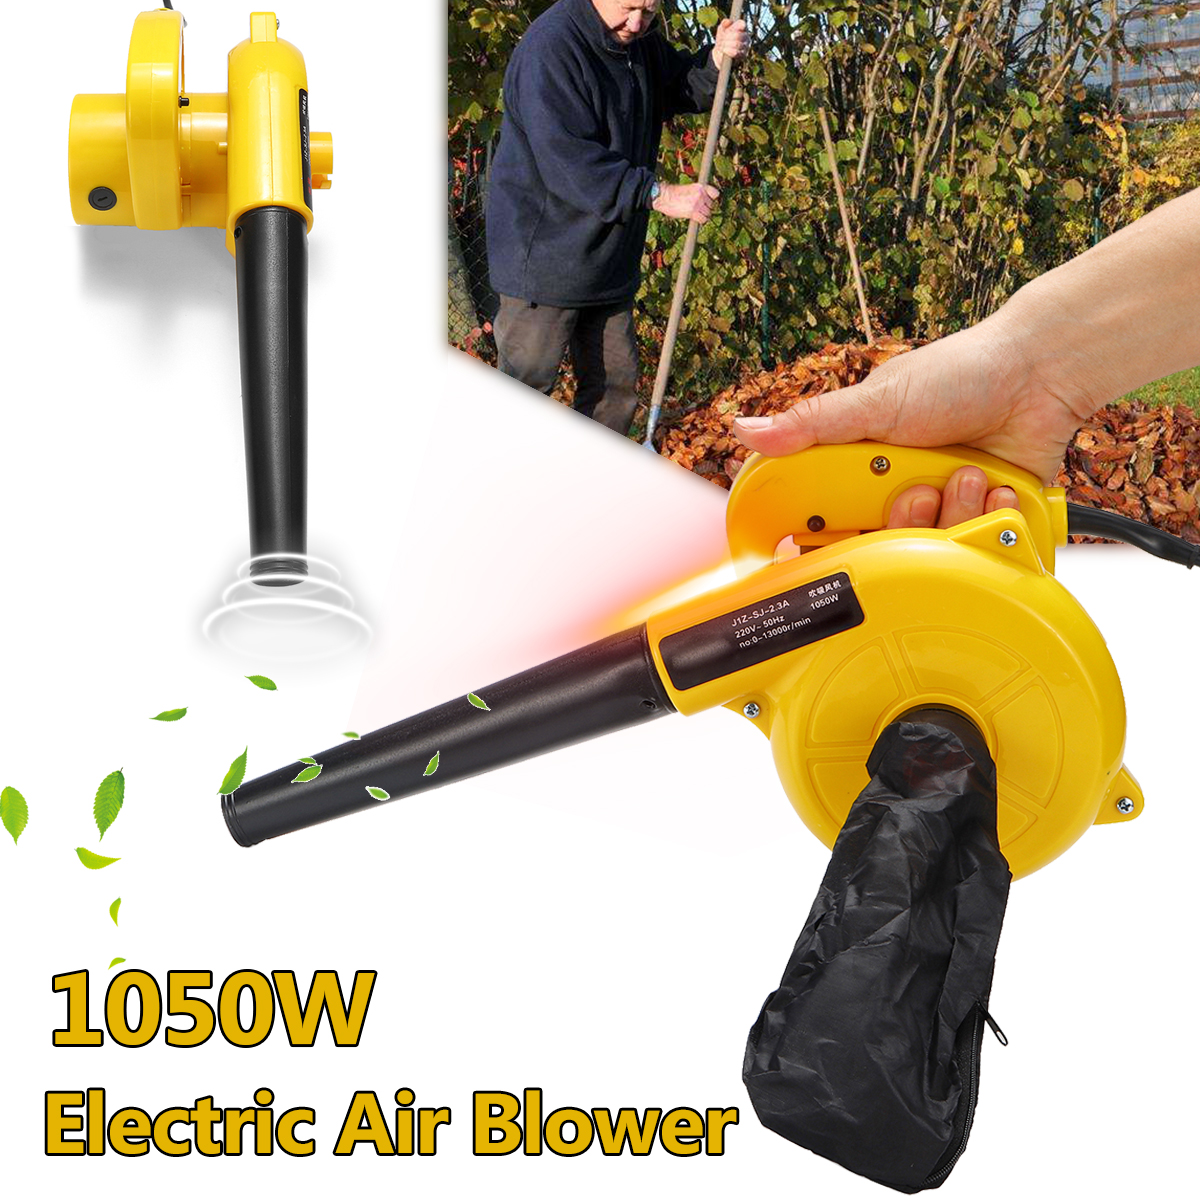 1050W Electric Leaf Blower Dust Leaf Vacuum Cleaner with Pack Electric Air Blower Vacuum Tool